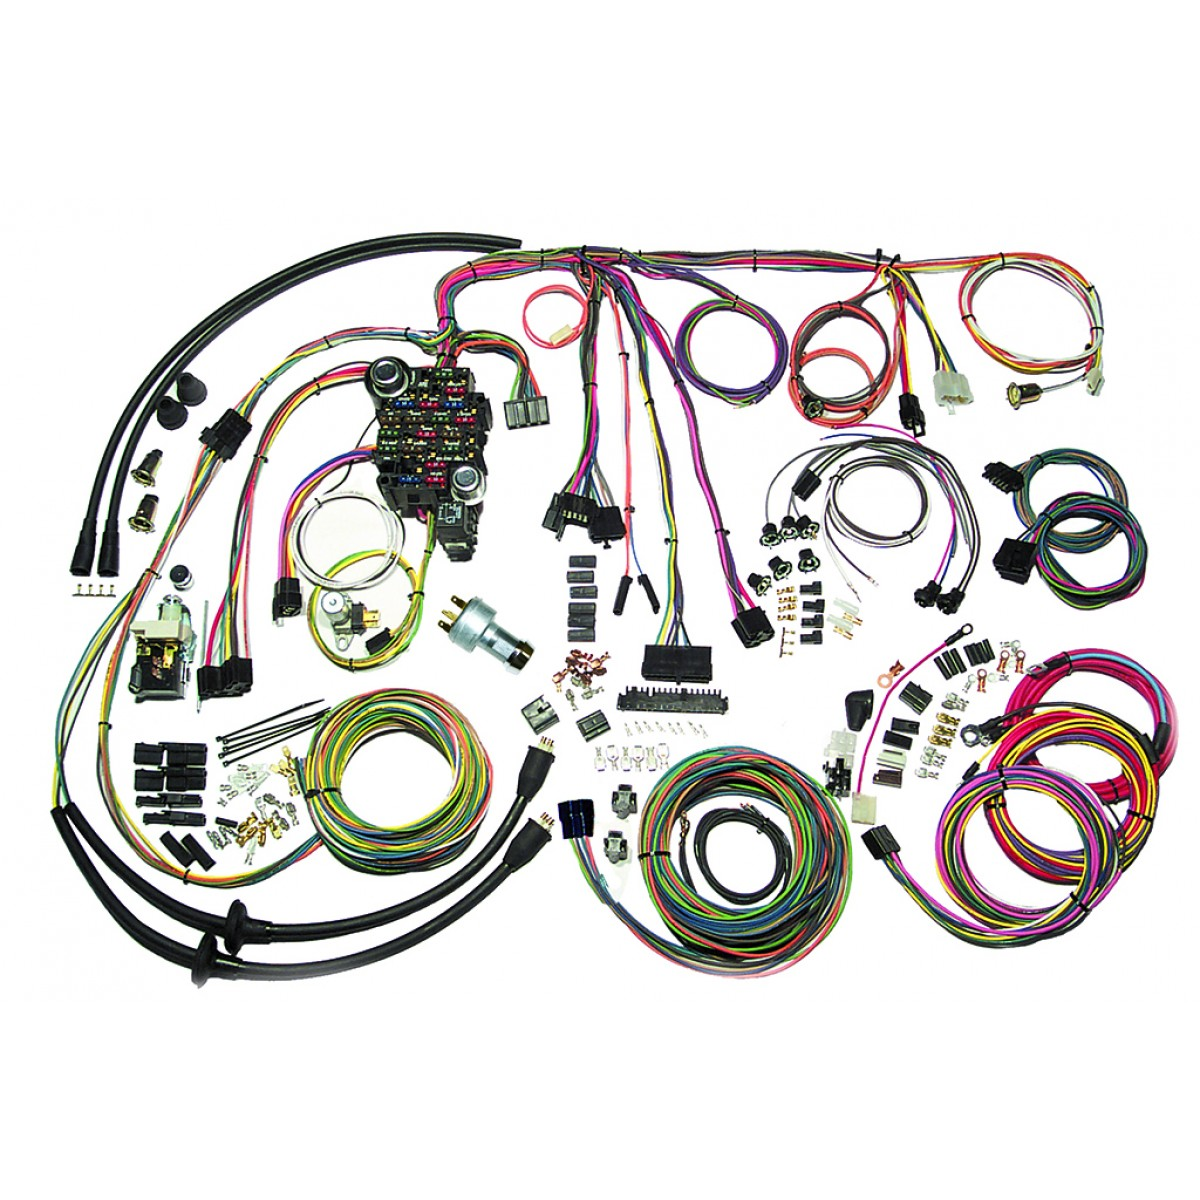 1957 Chevy Bel Air Wiring Harness Data Diagram 57 For Horn Belair Wire Complete Kit Painless